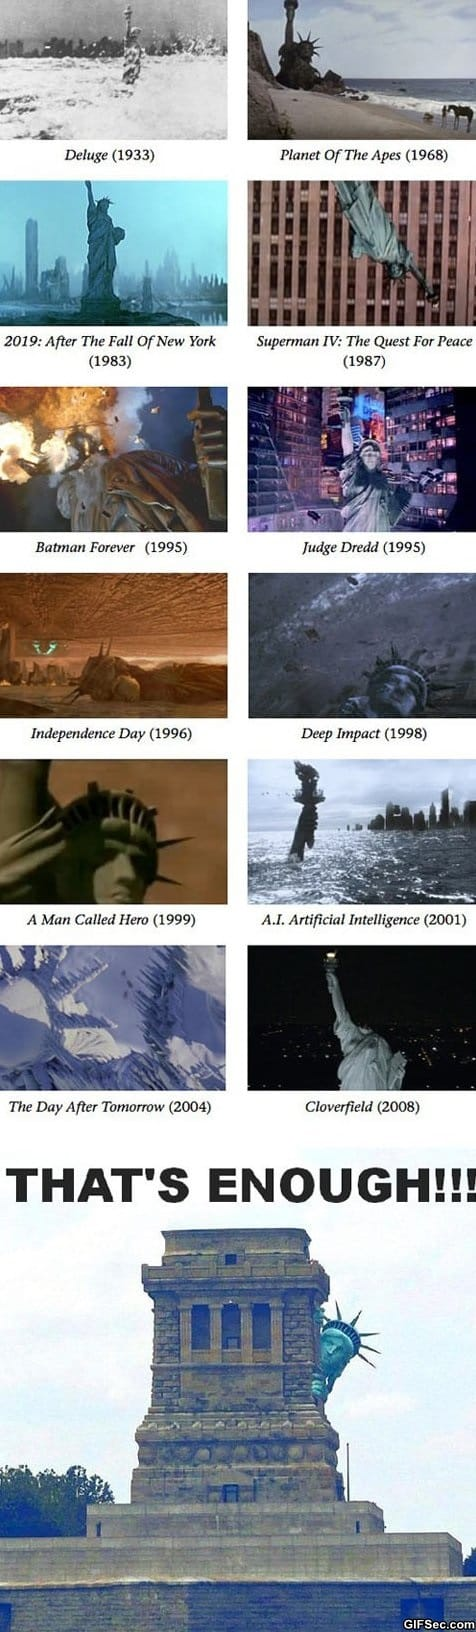 funny-the-statue-of-liberty-in-movies